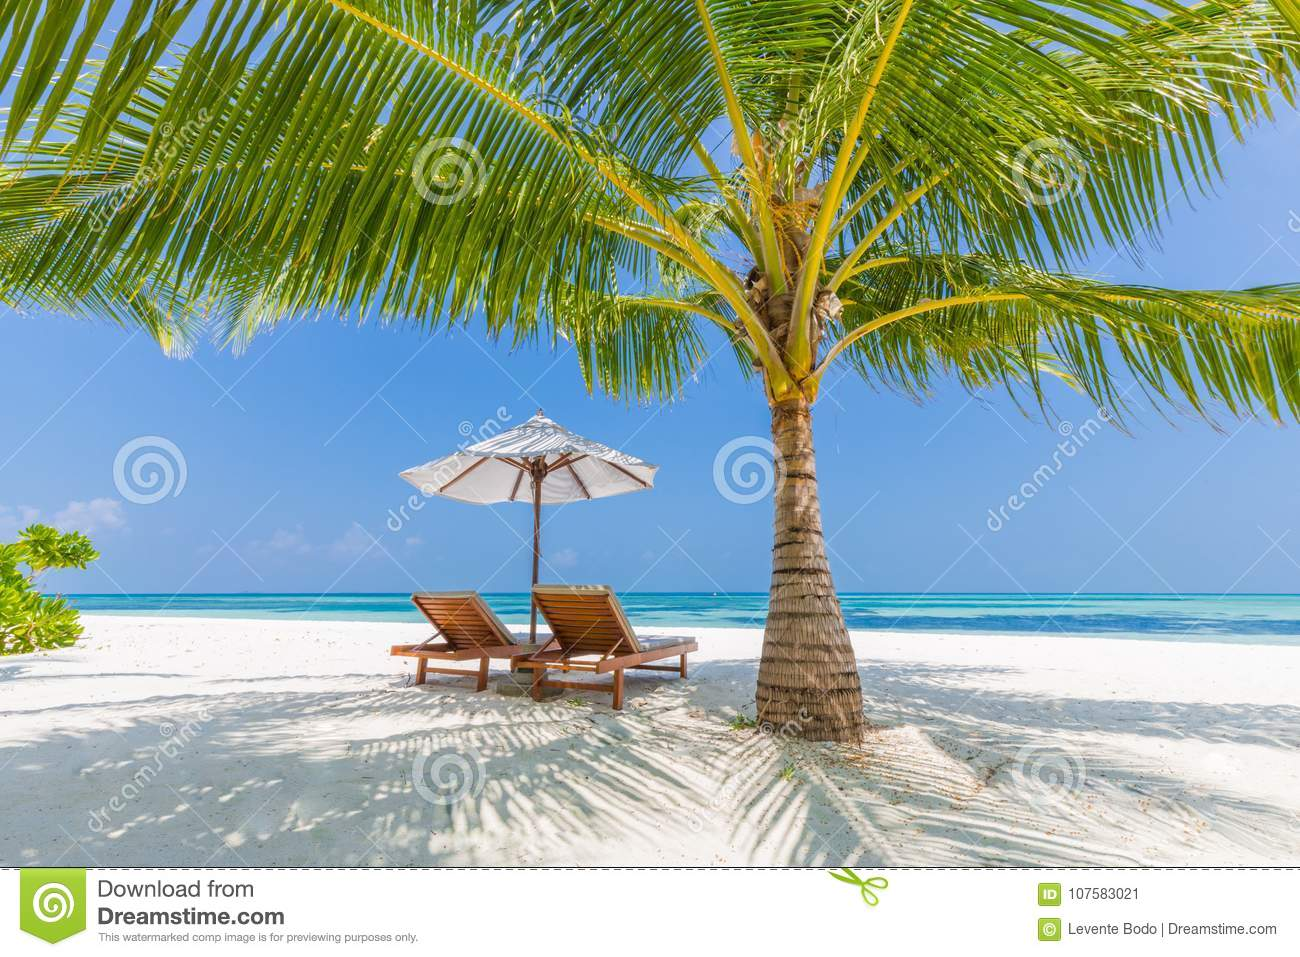 46 844 Beach Chairs Photos Free Royalty Free Stock Photos From Dreamstime